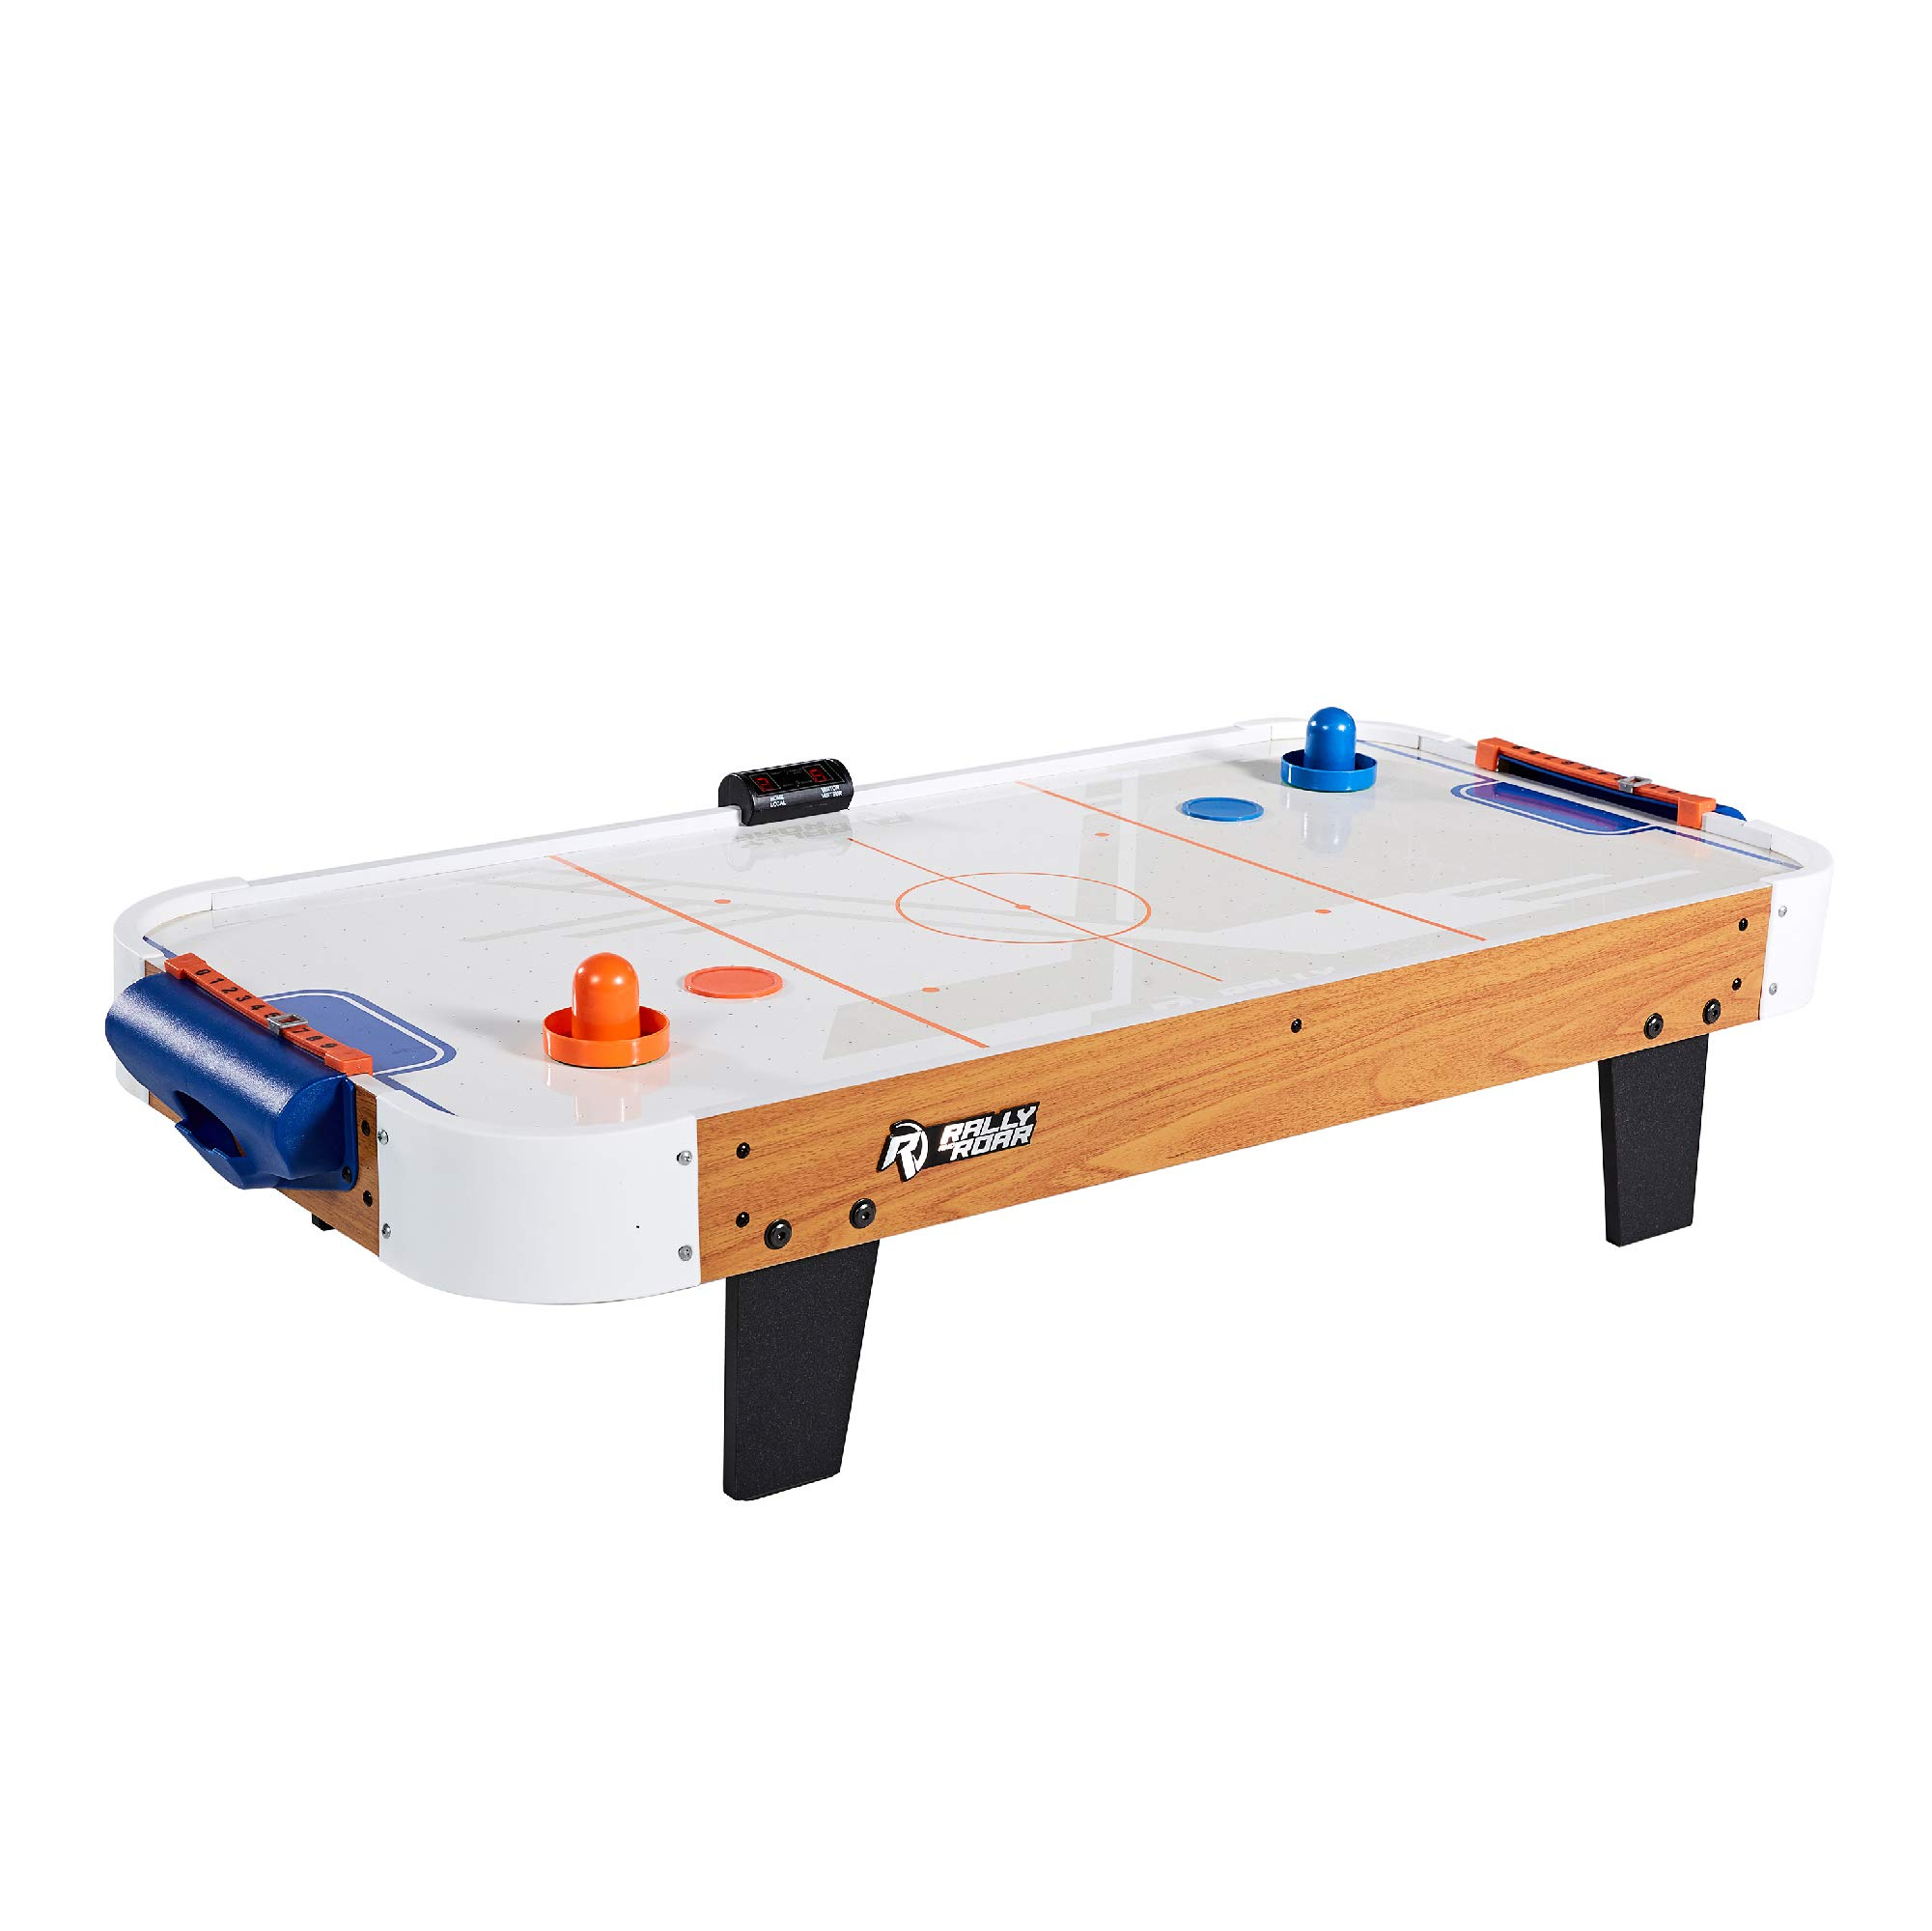 Rally and Roar Tabletop Air Hockey Table, Travel-Size, Lightweight, Plug-in - Mini Air-Powered Hockey Set with 2 Pucks, 2 Pushers, LED Score Tracker - Fun Arcade Games and Accessories by Rally and Roar